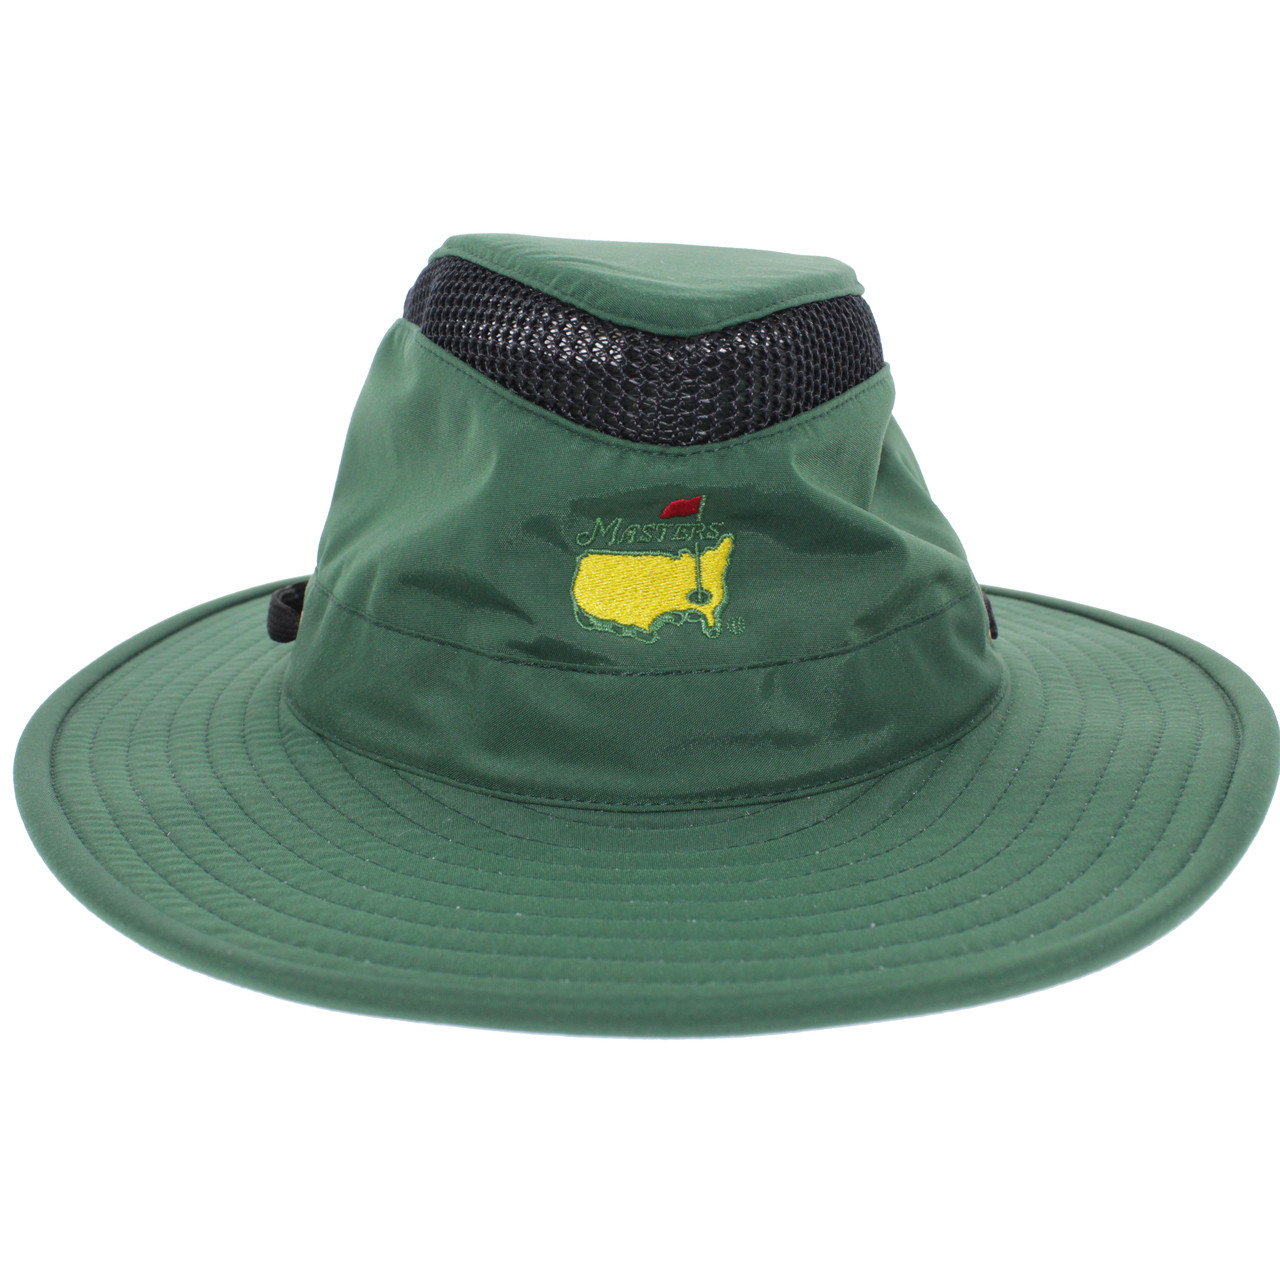 8328facc42f Masters Green Tilley Hat